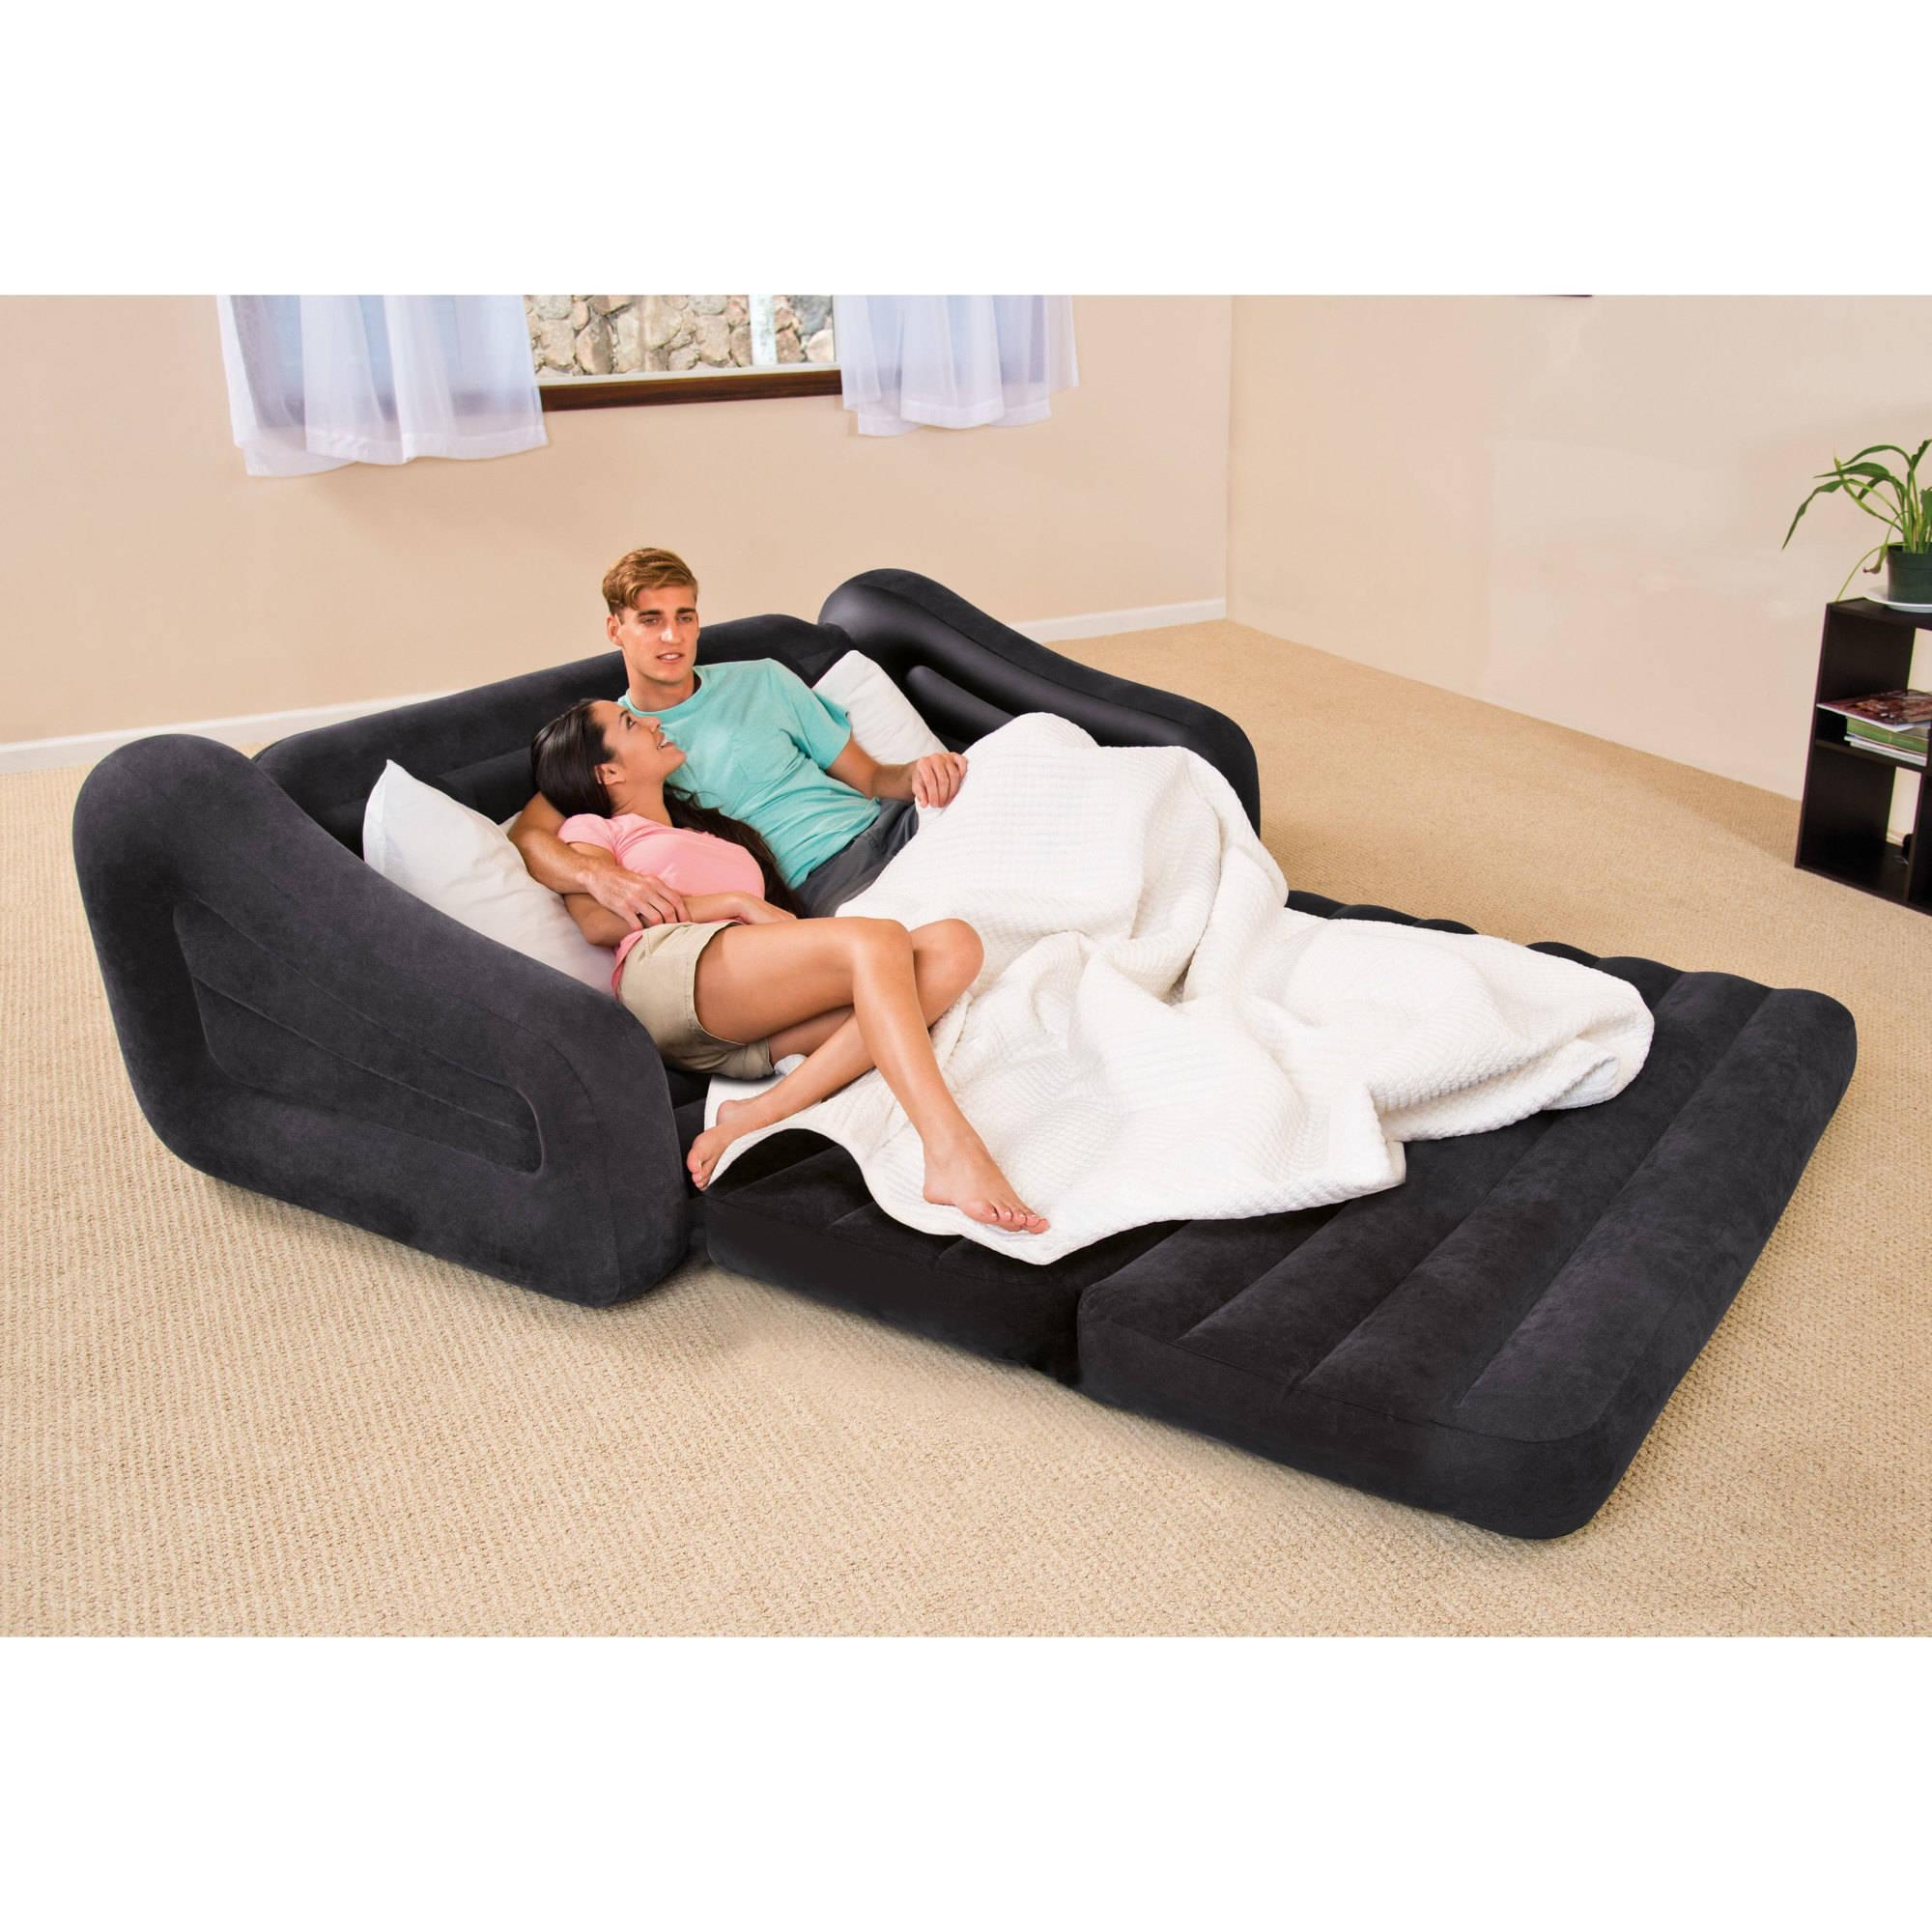 Intex Queen Inflatable Pull Out Sofa Bed – Walmart Regarding Intex Queen Sleeper Sofas (Image 19 of 20)